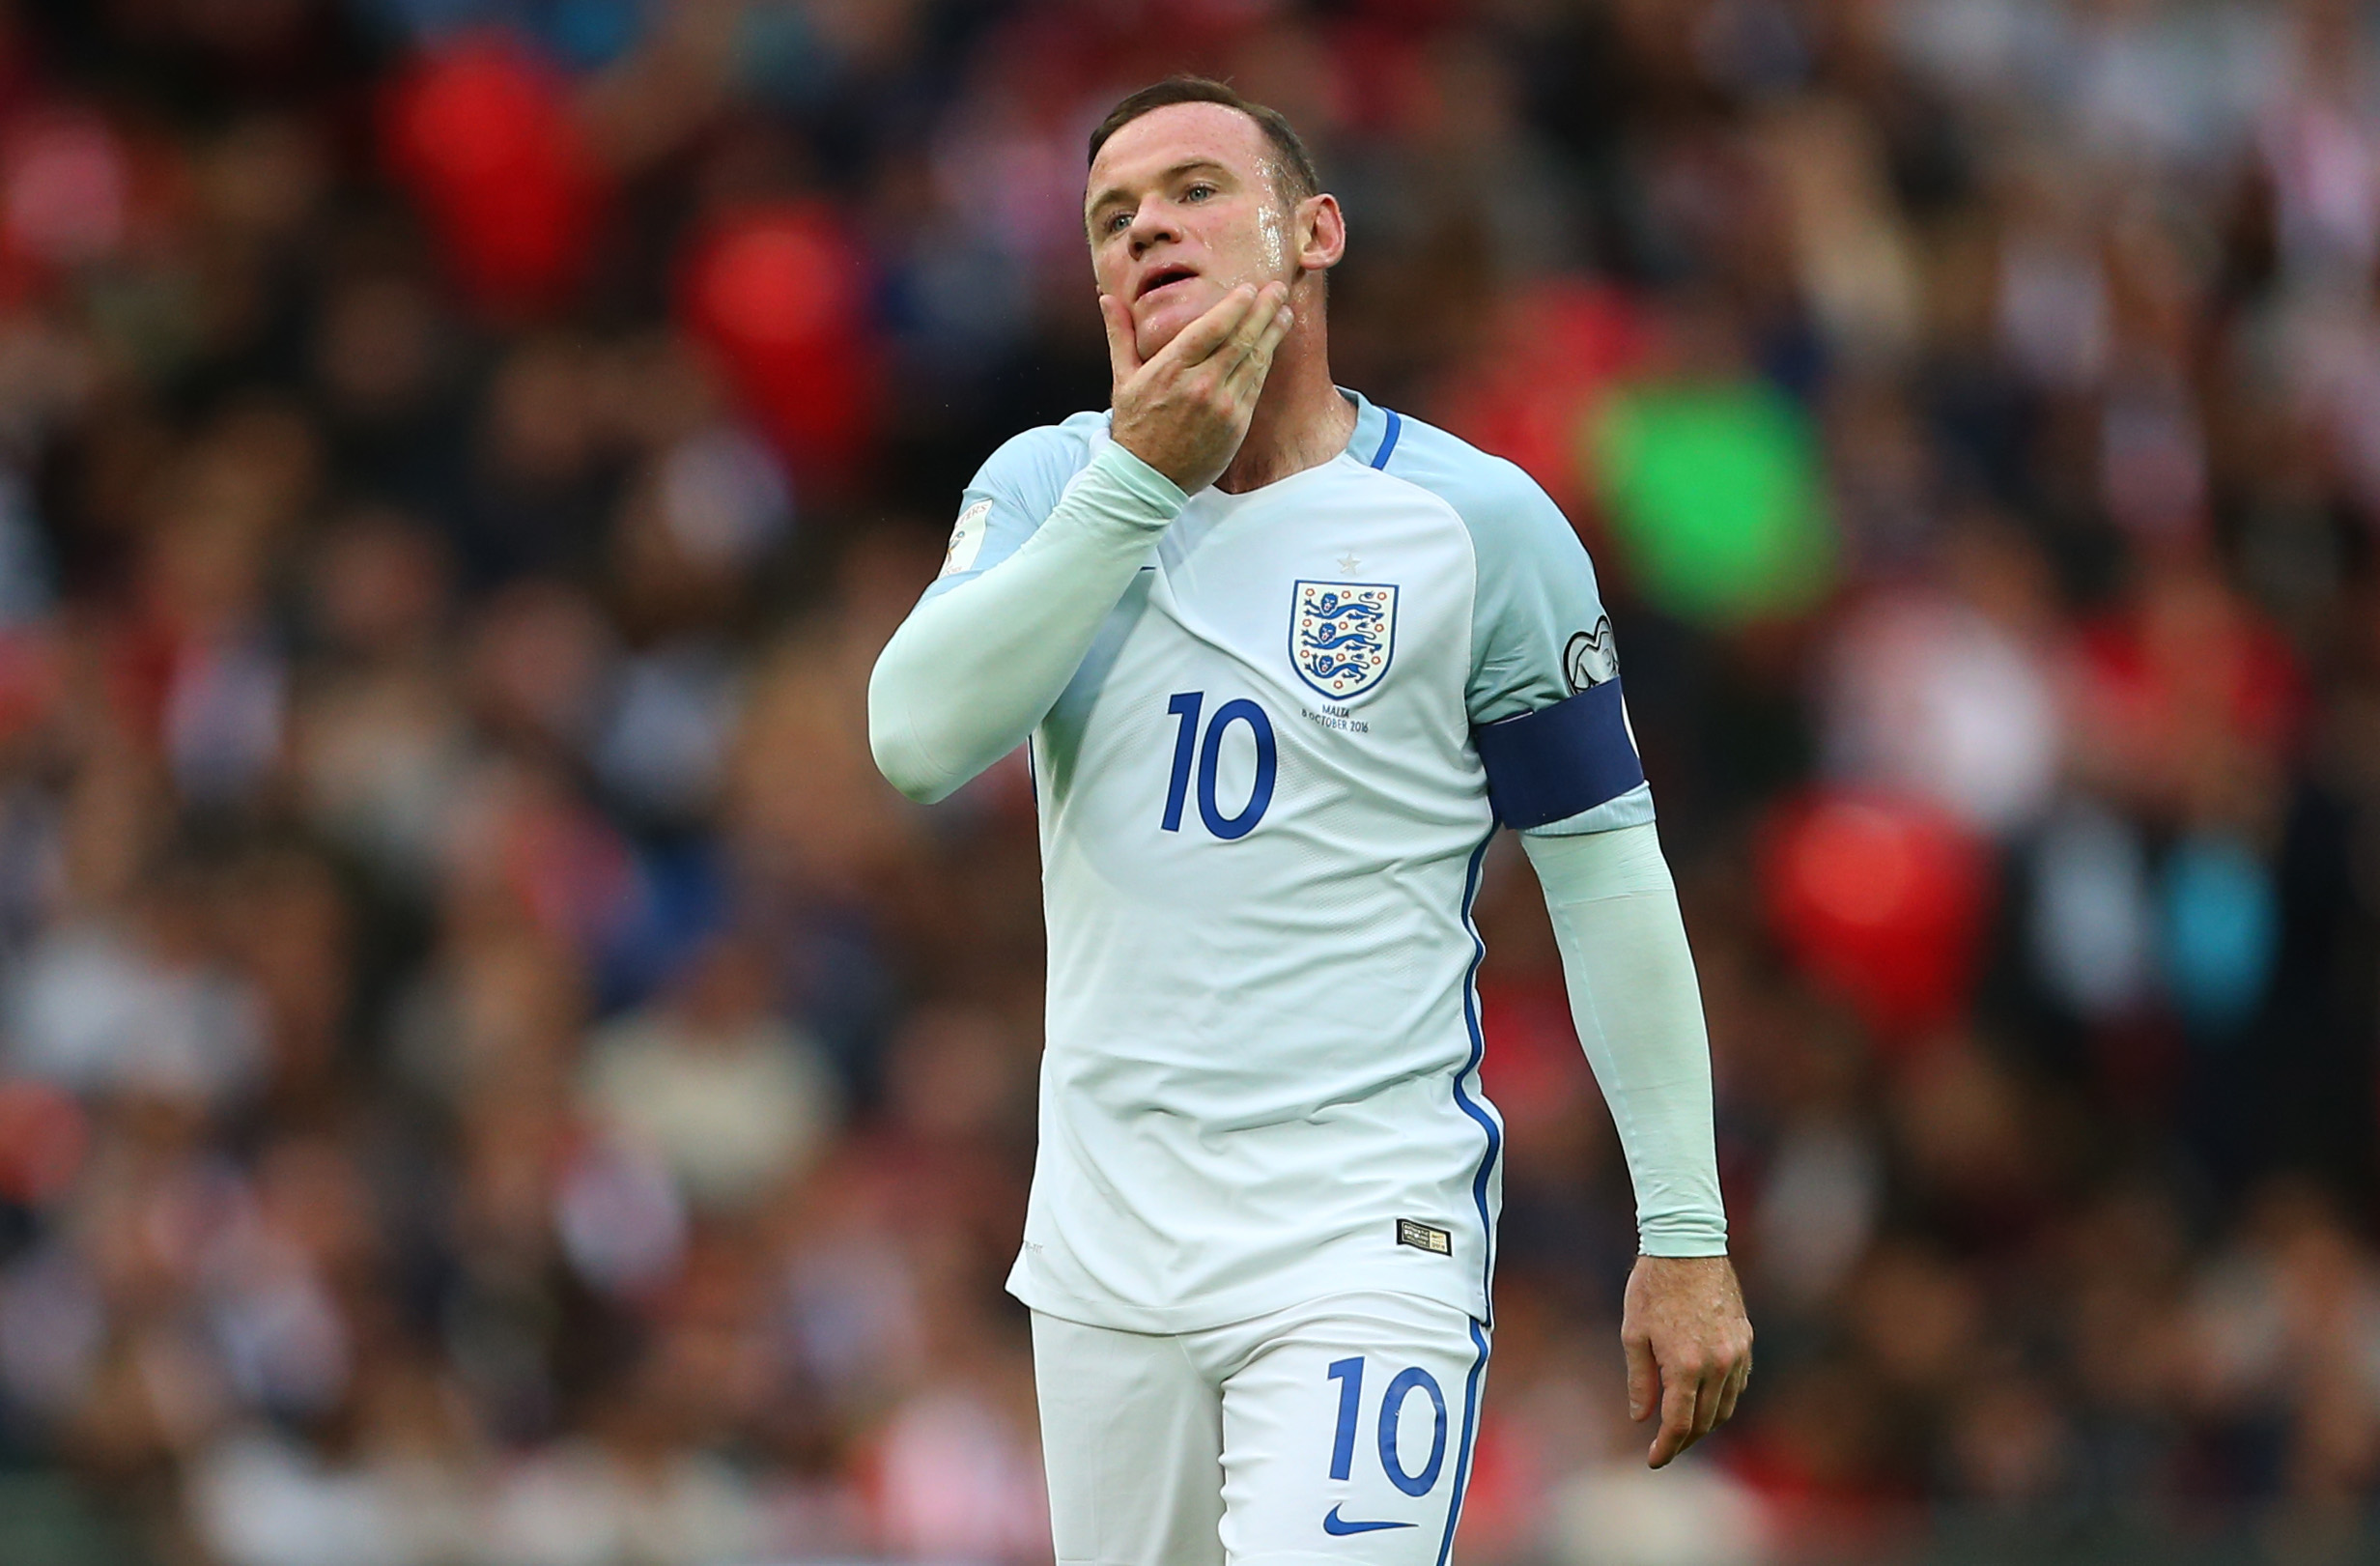 England captain Wayne Rooney defended by manager Gareth Southgate